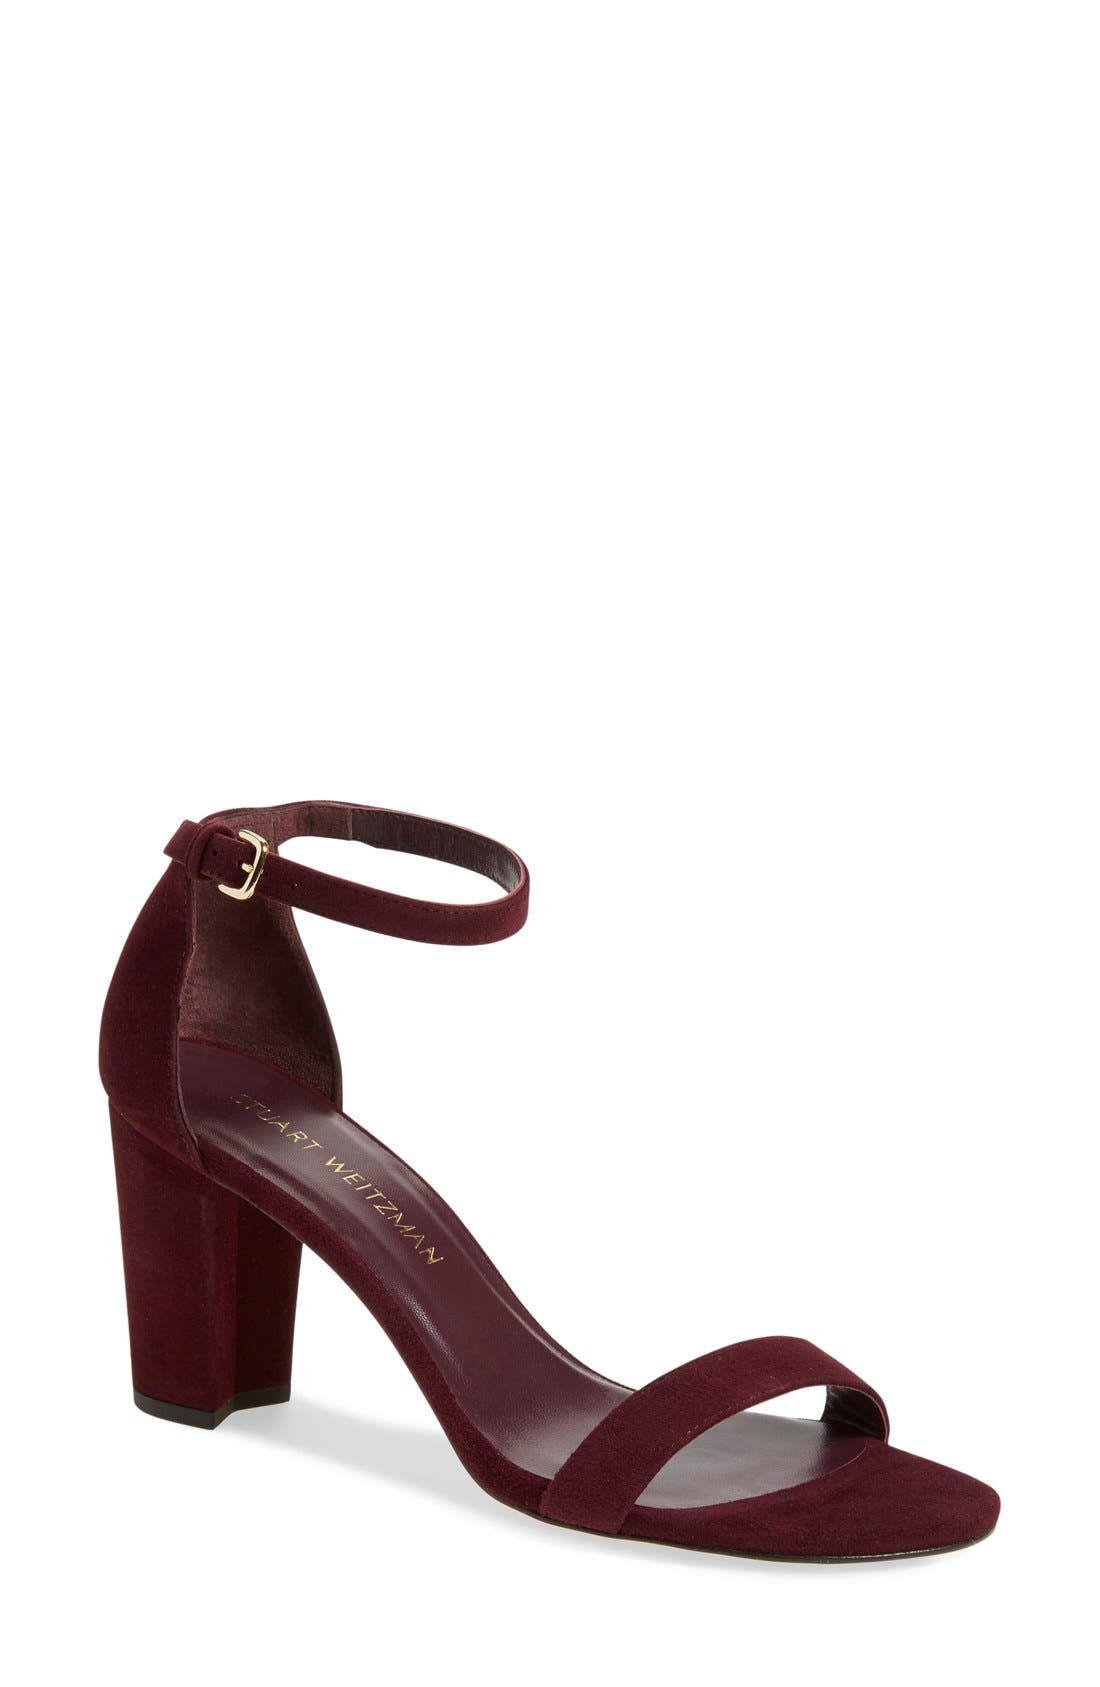 NearlyNude Ankle Strap Sandal,                             Main thumbnail 24, color,